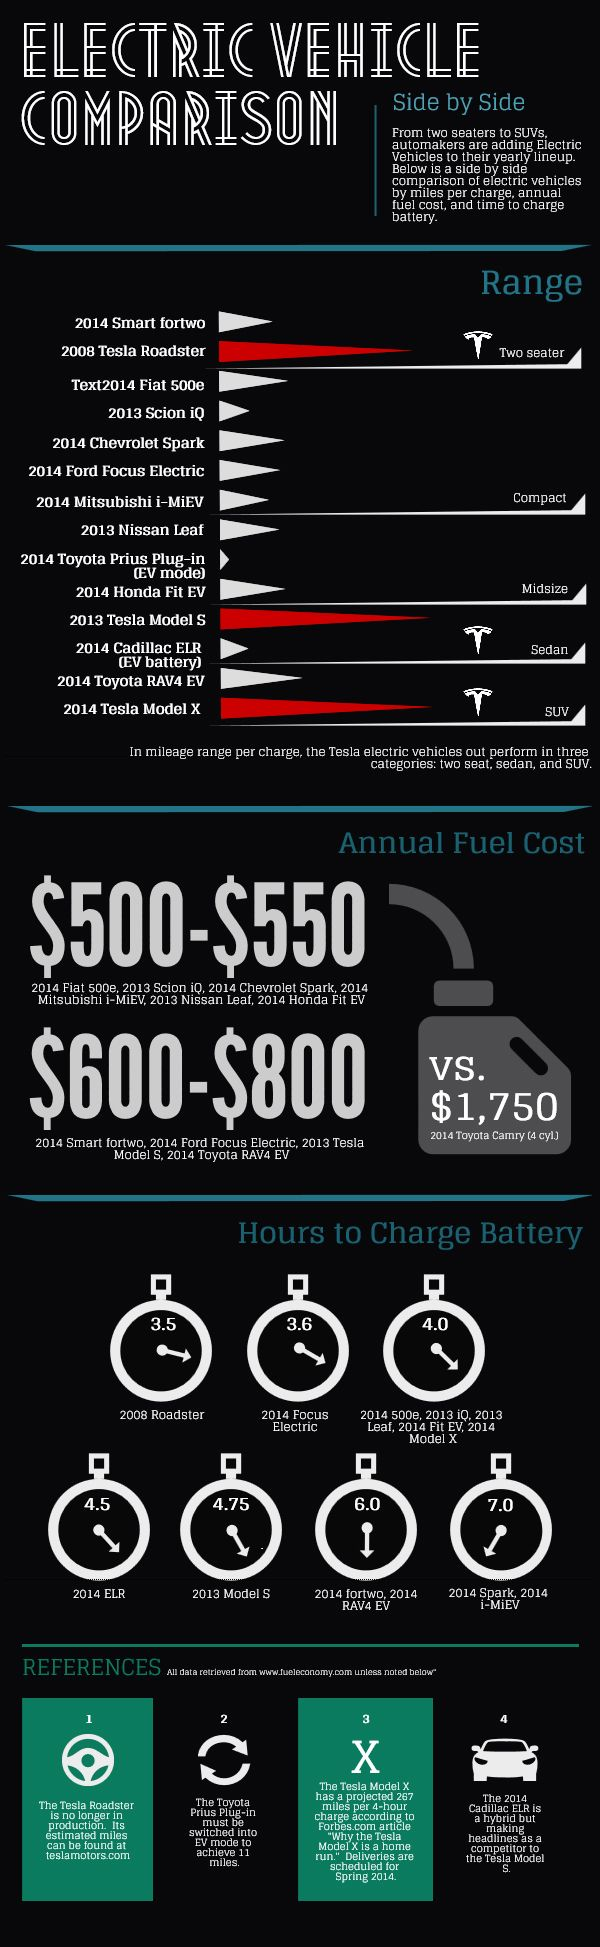 This Infographic Compares Electric Cars On Range Per Charge, Annual Fuel  Cost, And Time To Charge Battery. Highlights Include The Tesla Roadster, ...